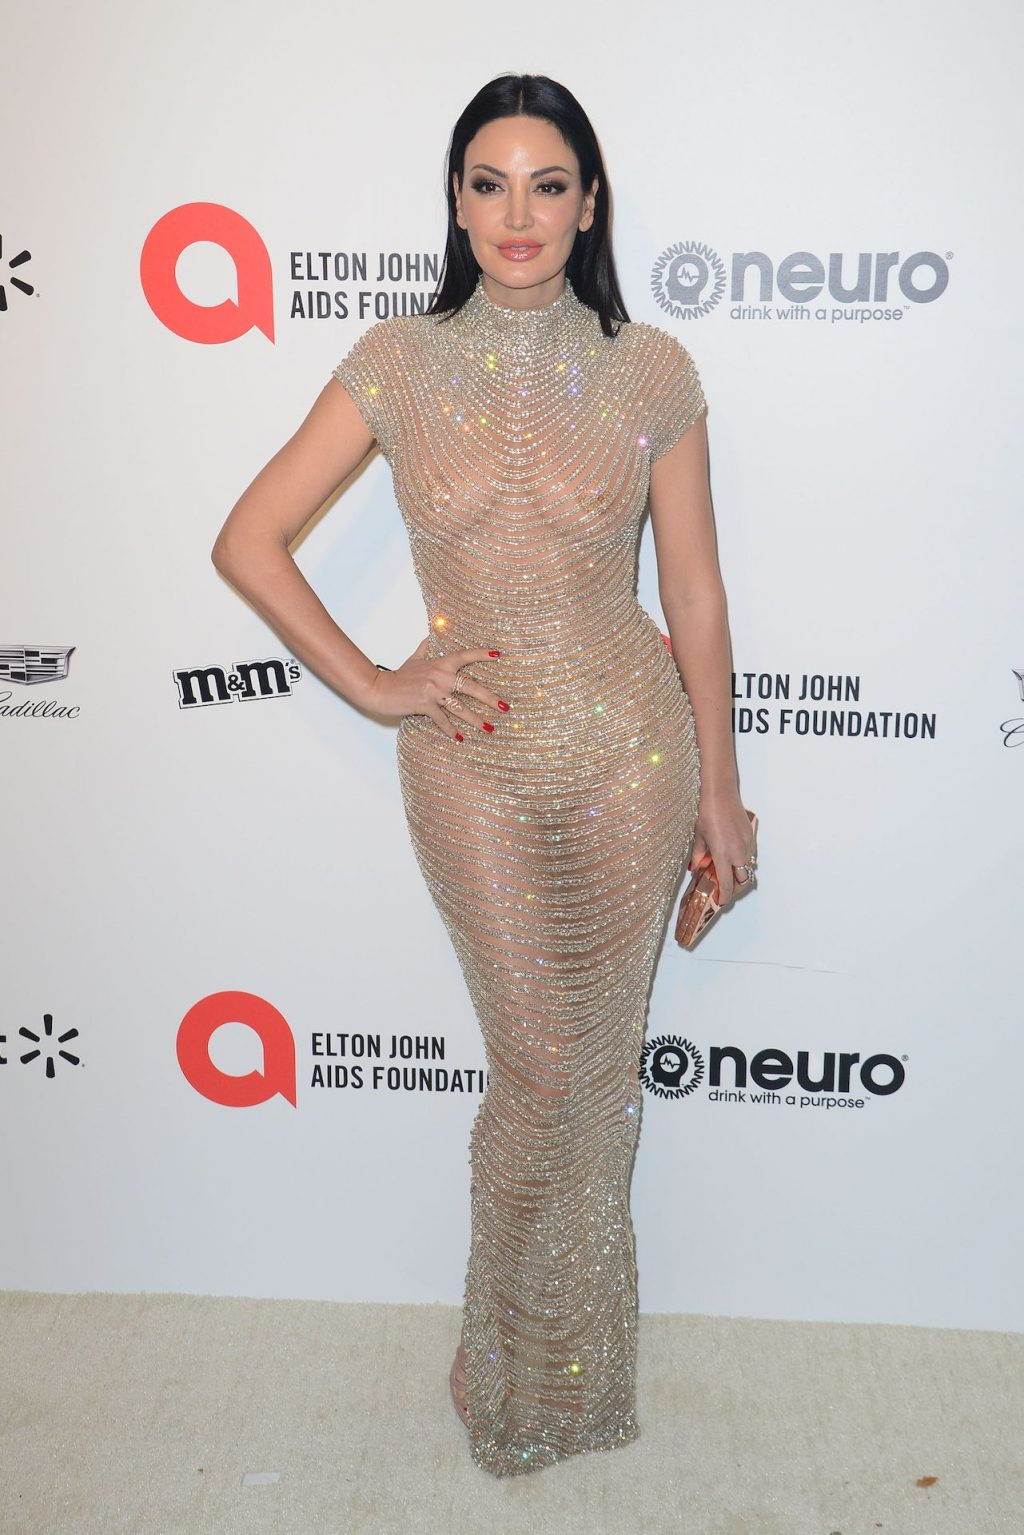 Bleona Qereti Shows Her Tits at the Elton John AIDS Foundation Academy Awards Party (22 Photos + Videos)